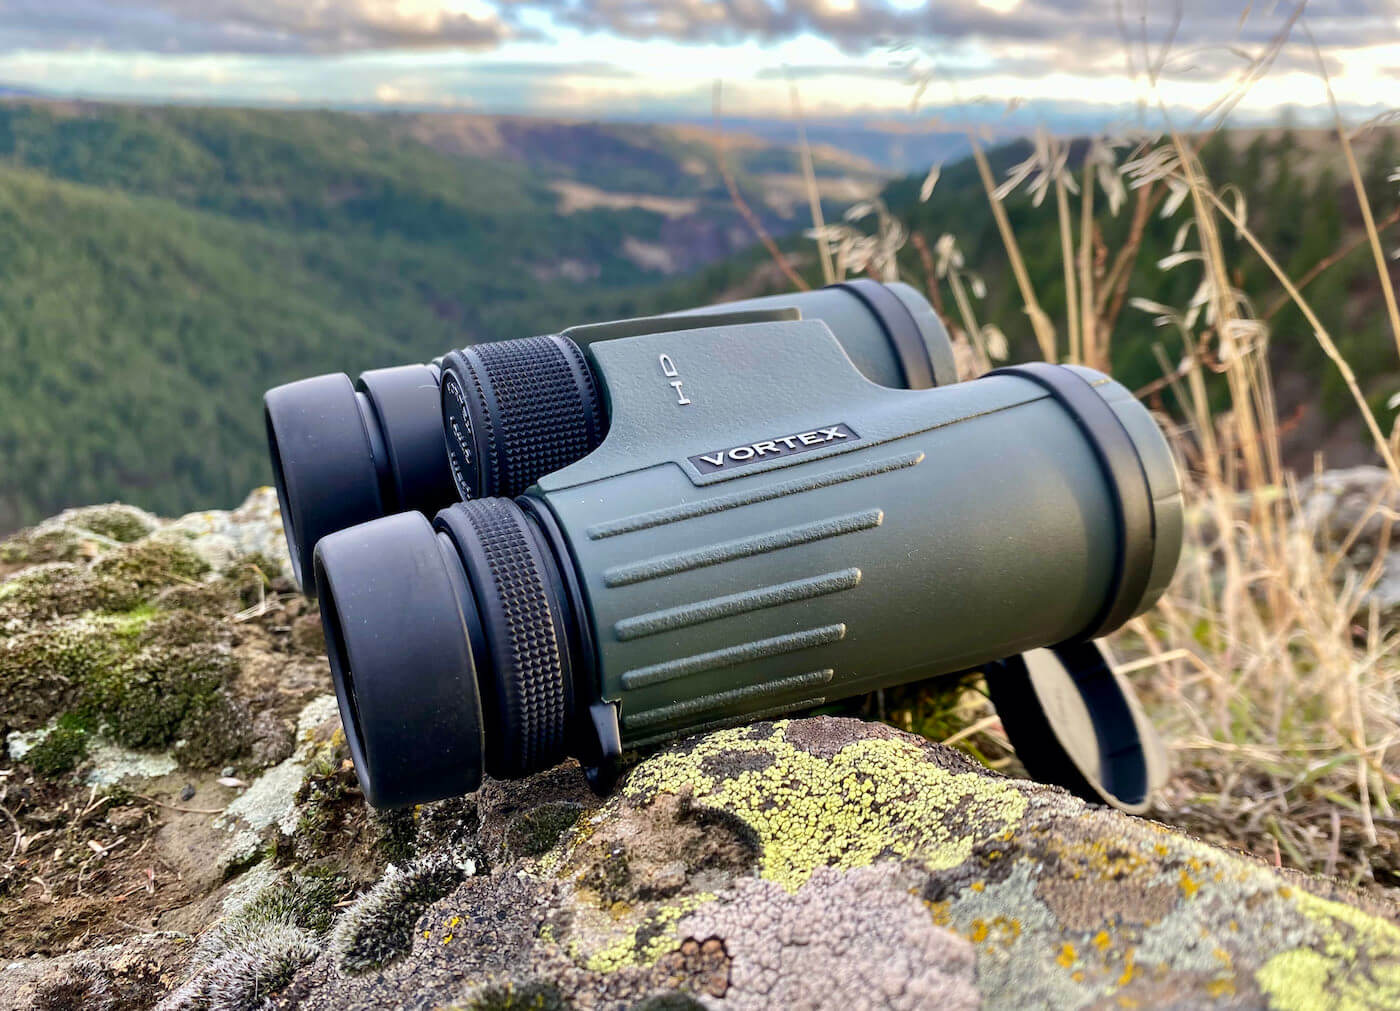 This review photo shows the author's Vortex Viper HD 10x42 binoculars outside during a hunting trip.